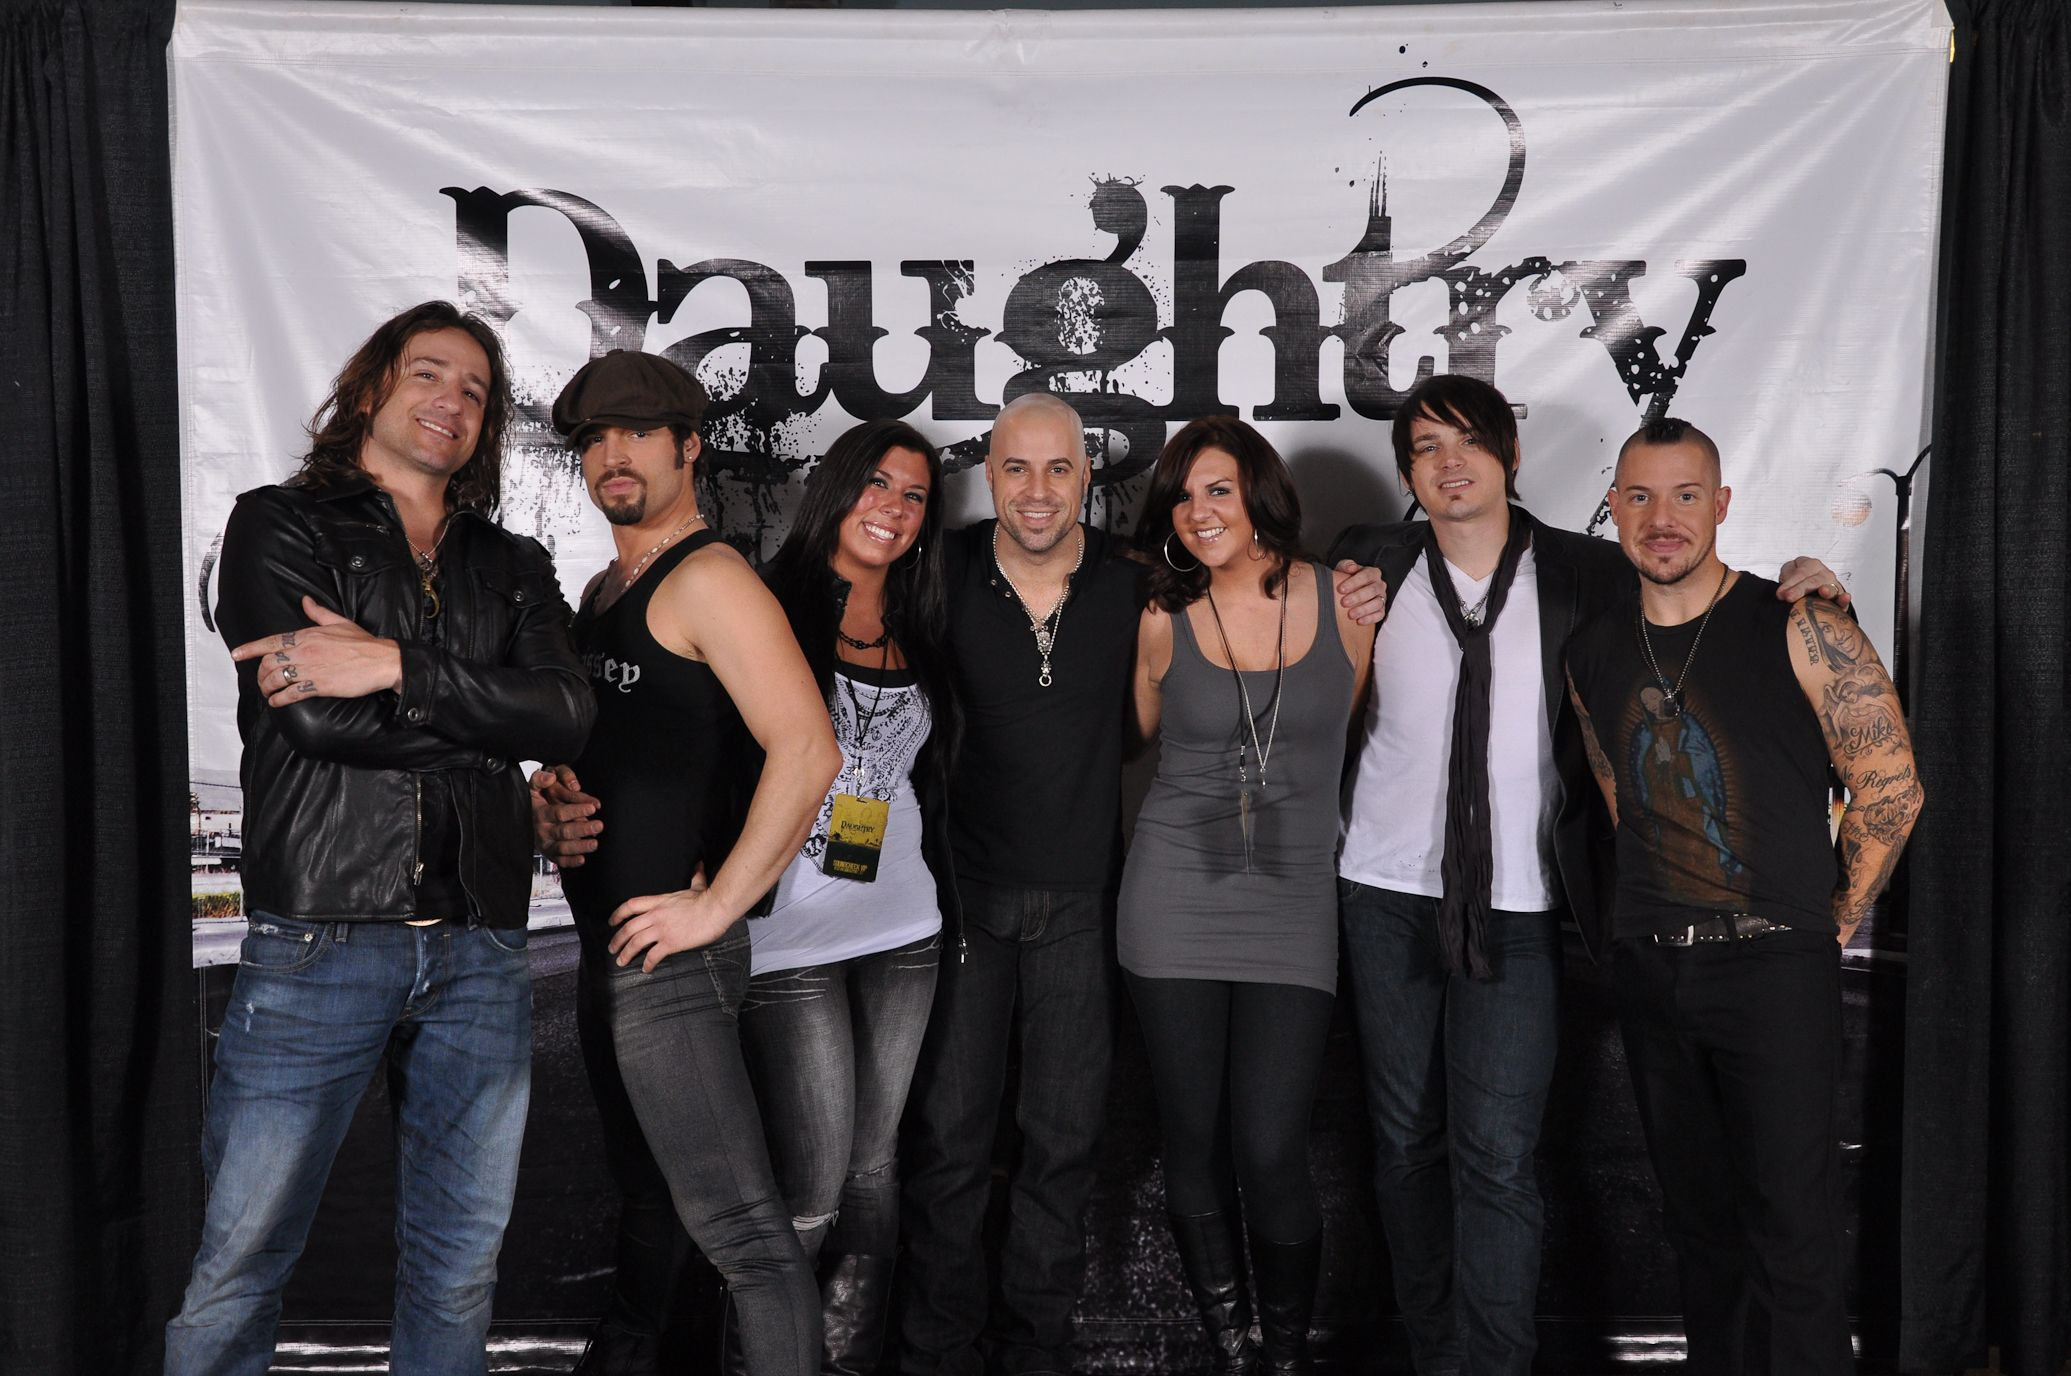 daughtry!!